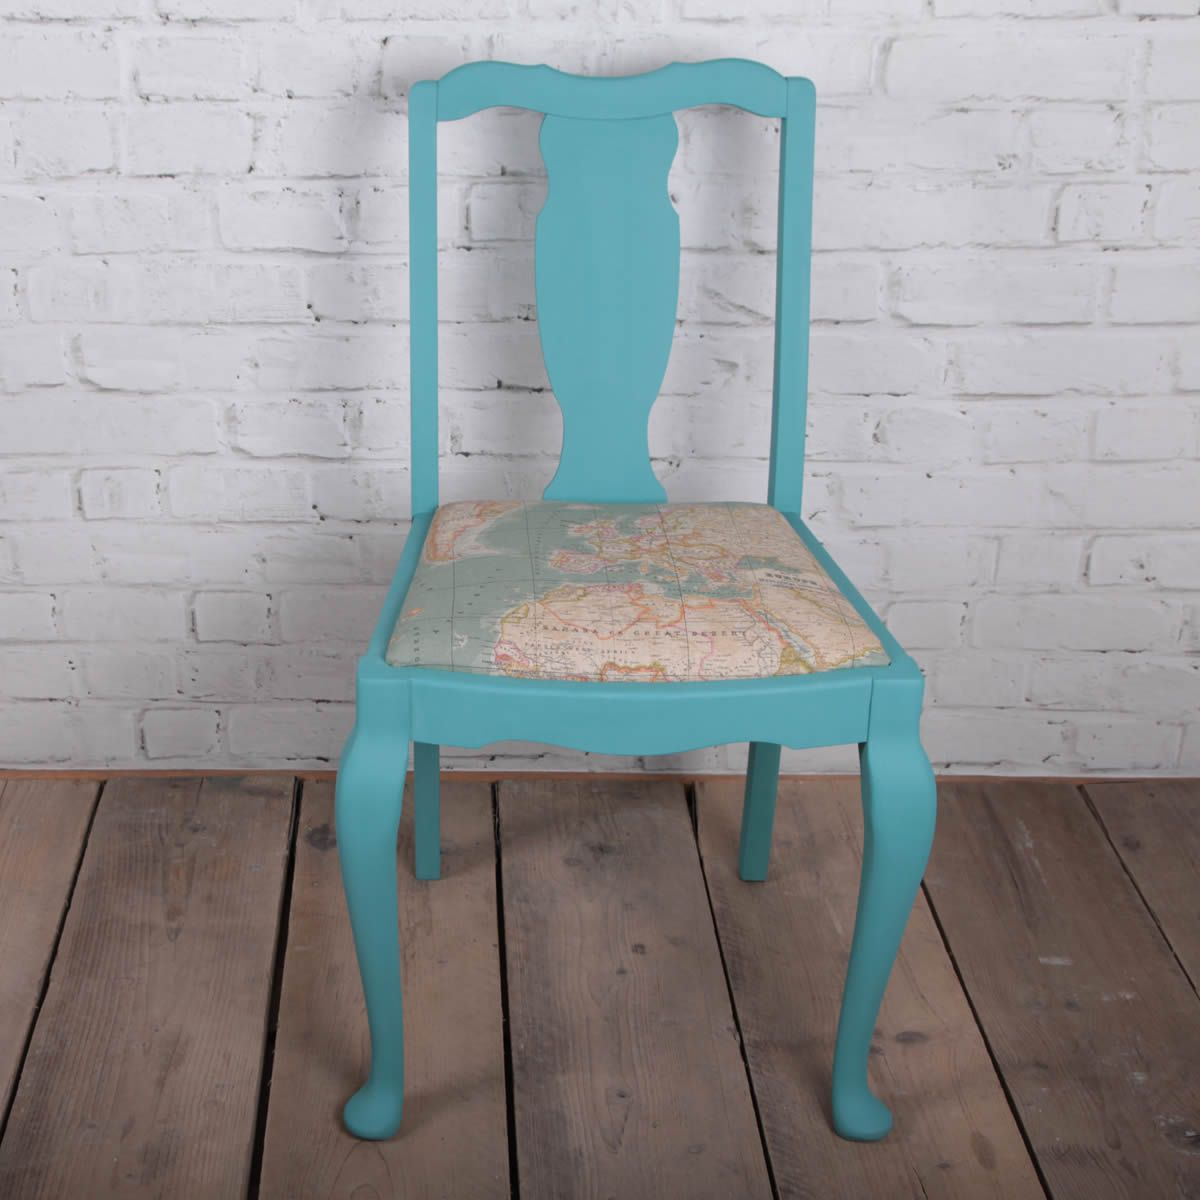 This Is An Original Ercol Dining Chair That Has Been Hand Painted Beauteous Second Hand Ercol Dining Room Furniture Design Ideas